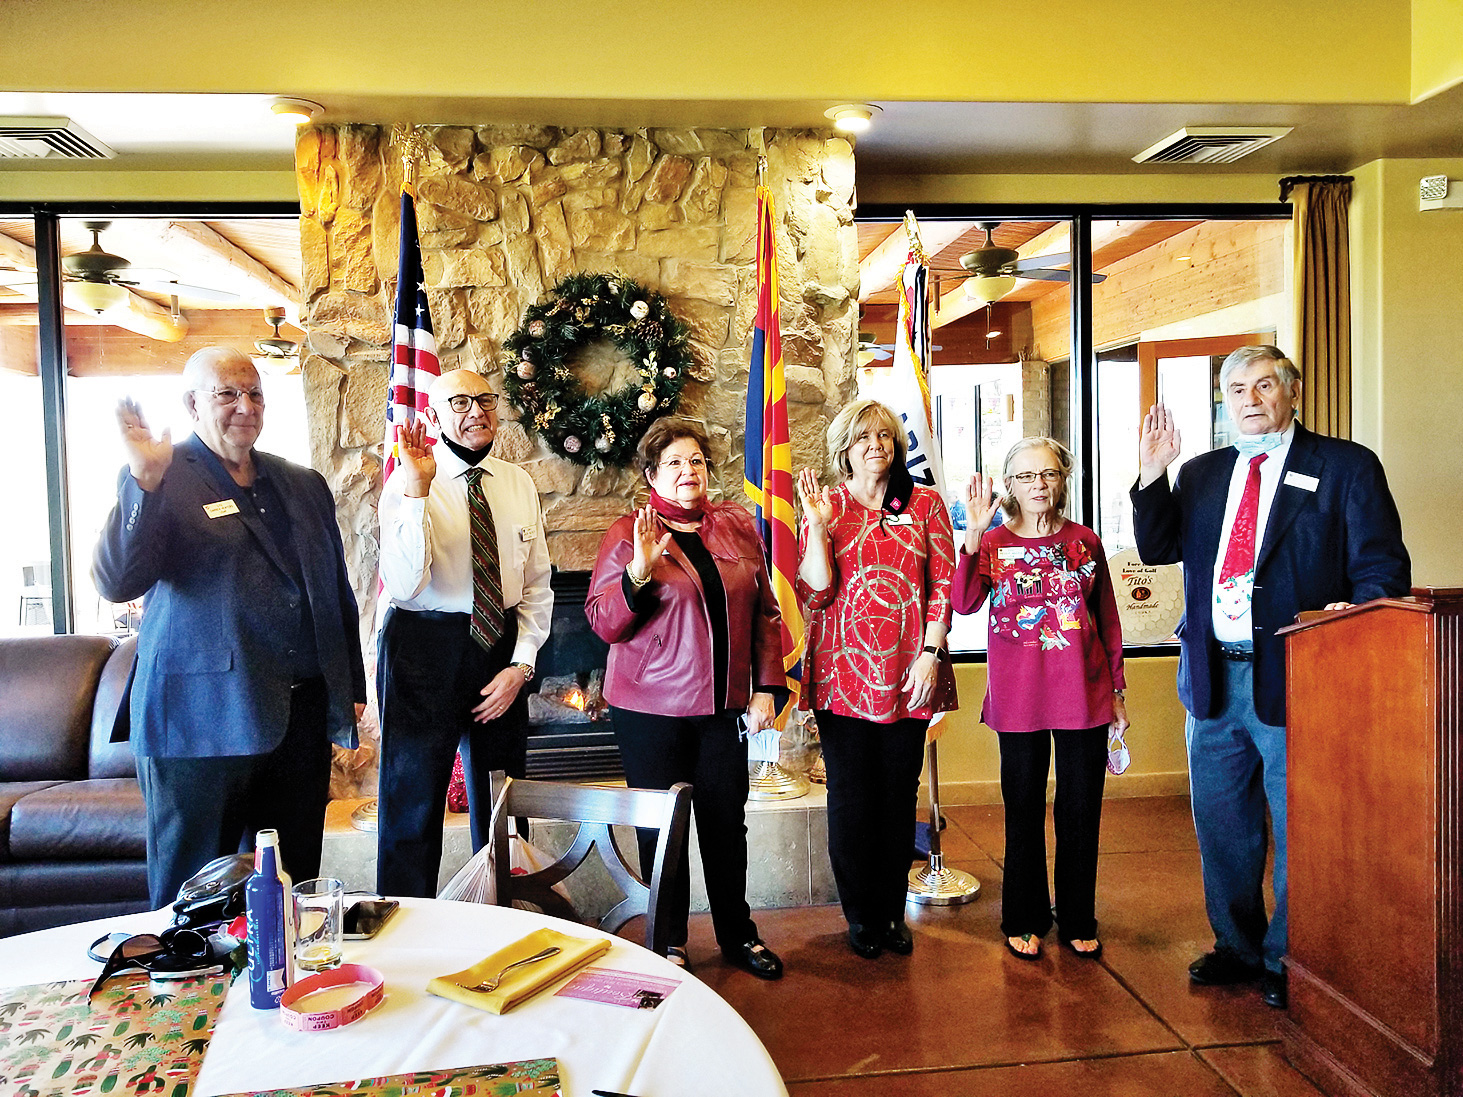 New board members (left to right) Darren Venters, Jack Bundy, Nora Durham, Jadine Hilt, Peggy McGee, and Joe Longo are sworn into office by past president John McGee. (Photo by Betty Atwater)